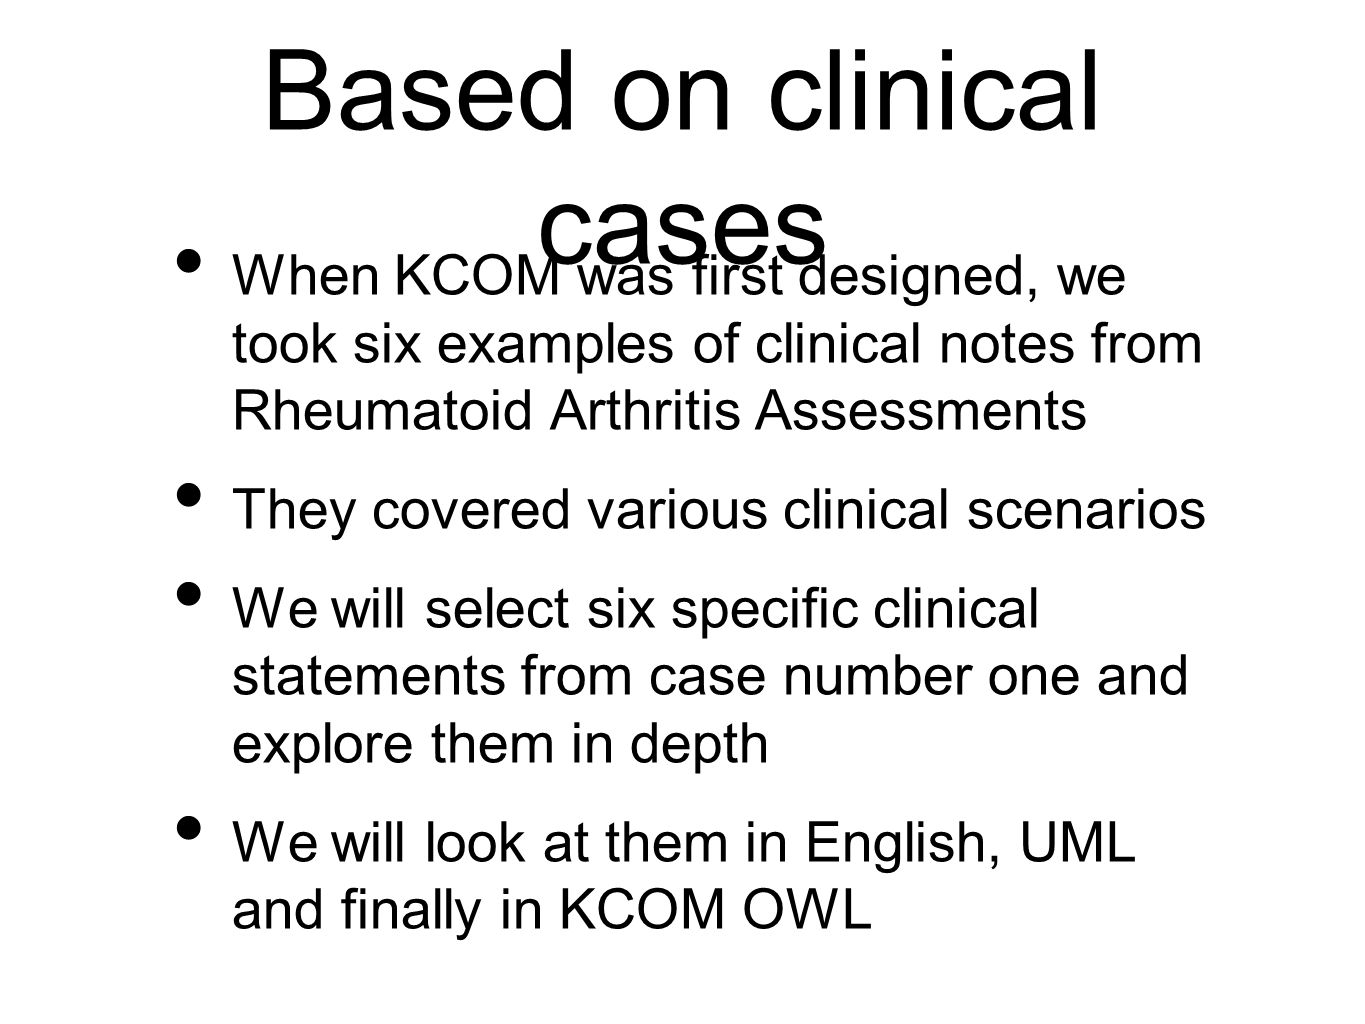 Based on clinical cases